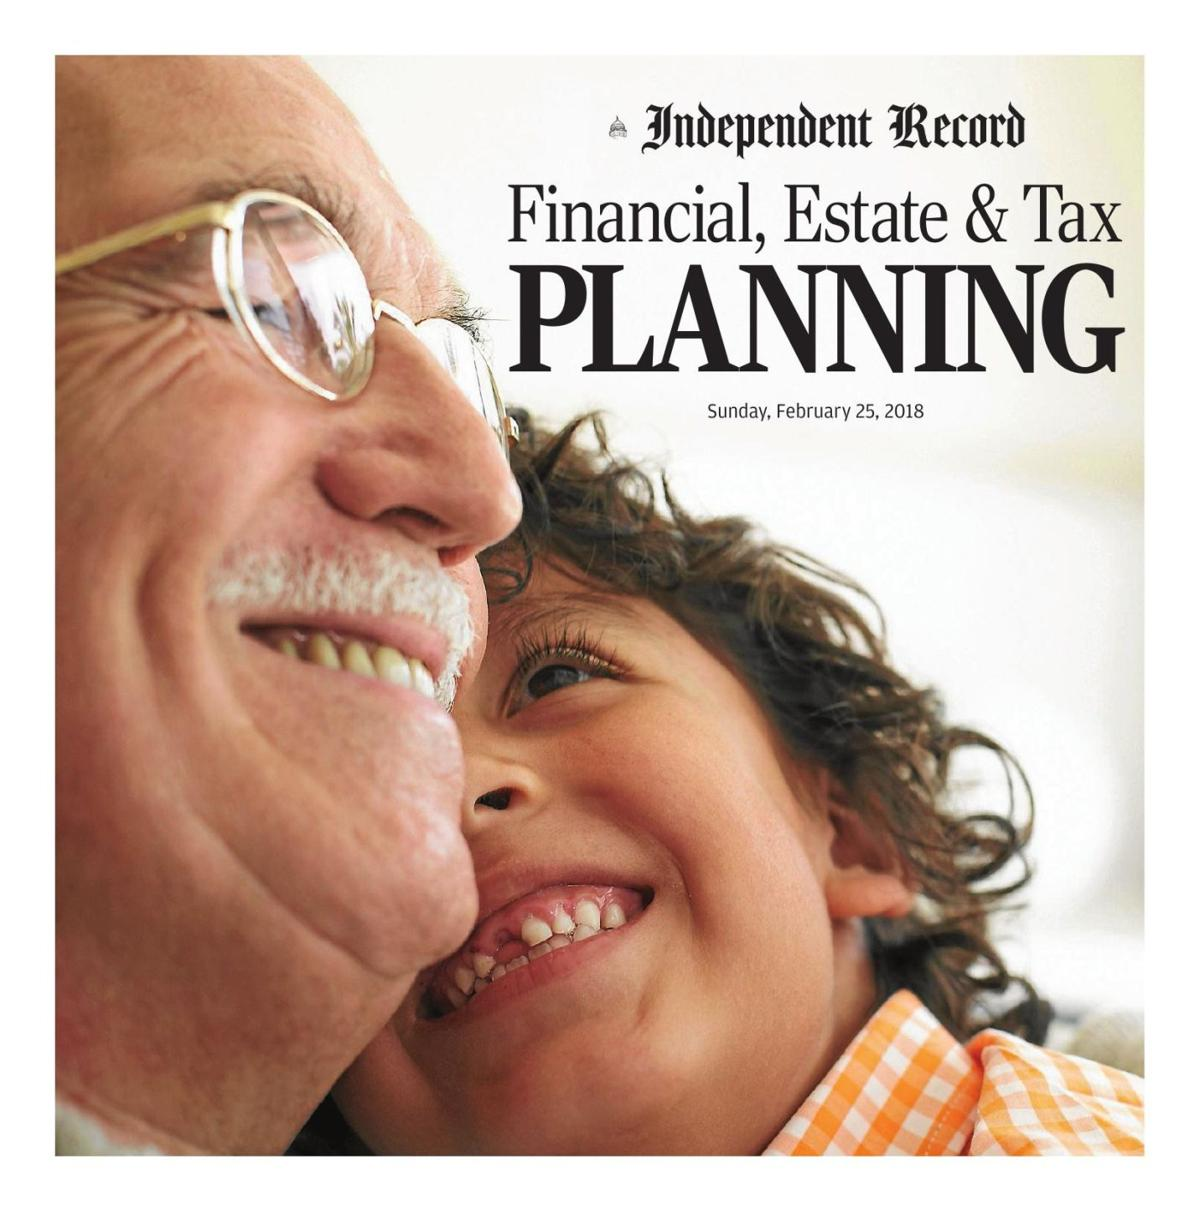 Financial, Estate & Tax Planning - February 25, 2018